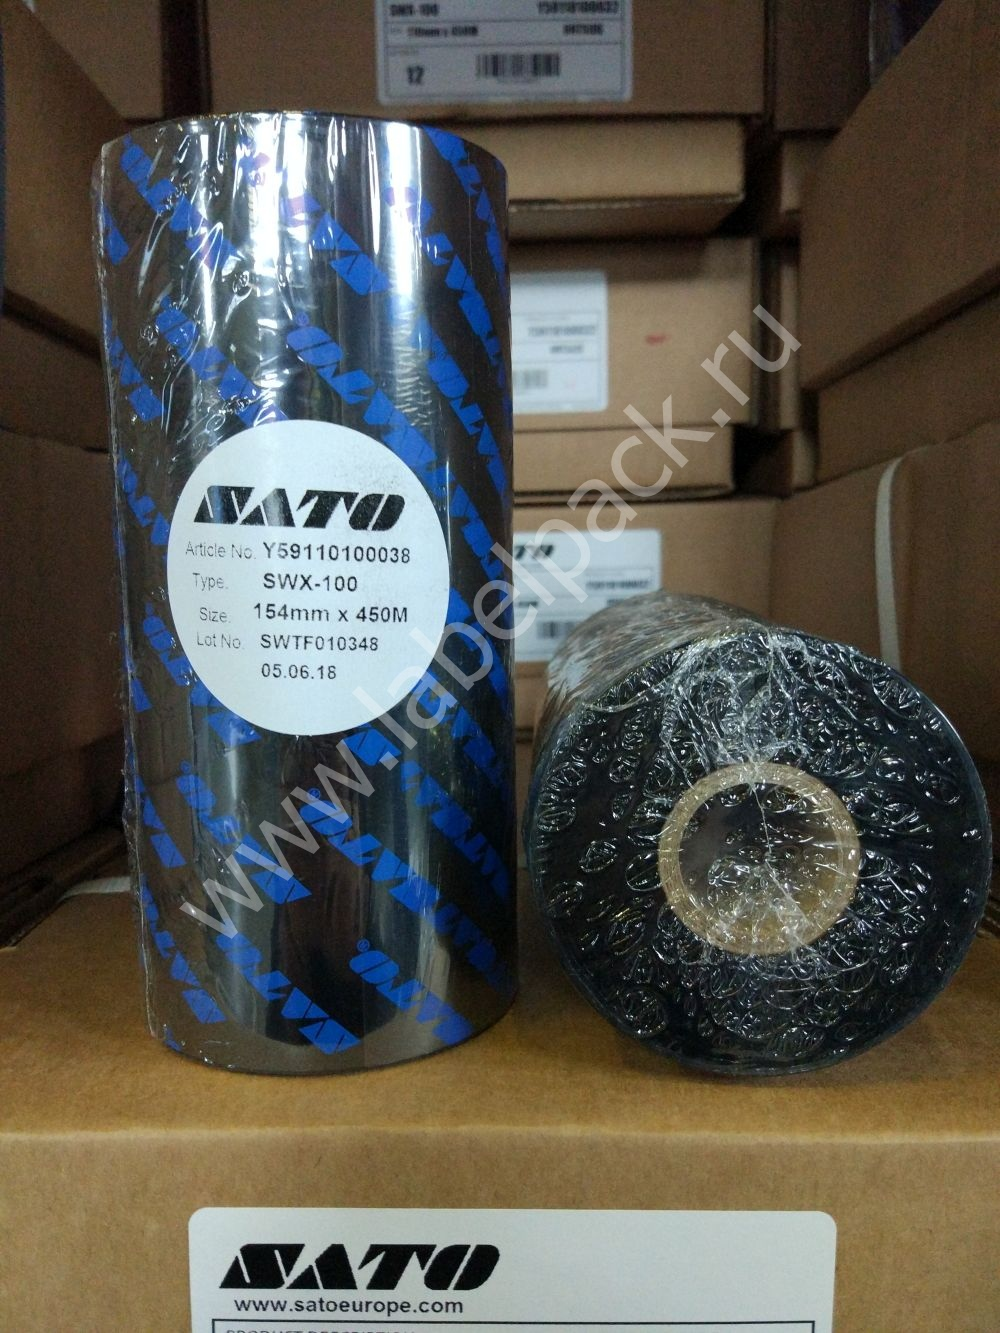 Y59110100038 2 1 - Риббон - SATO SWX100 WAX 154 x 450 OUT